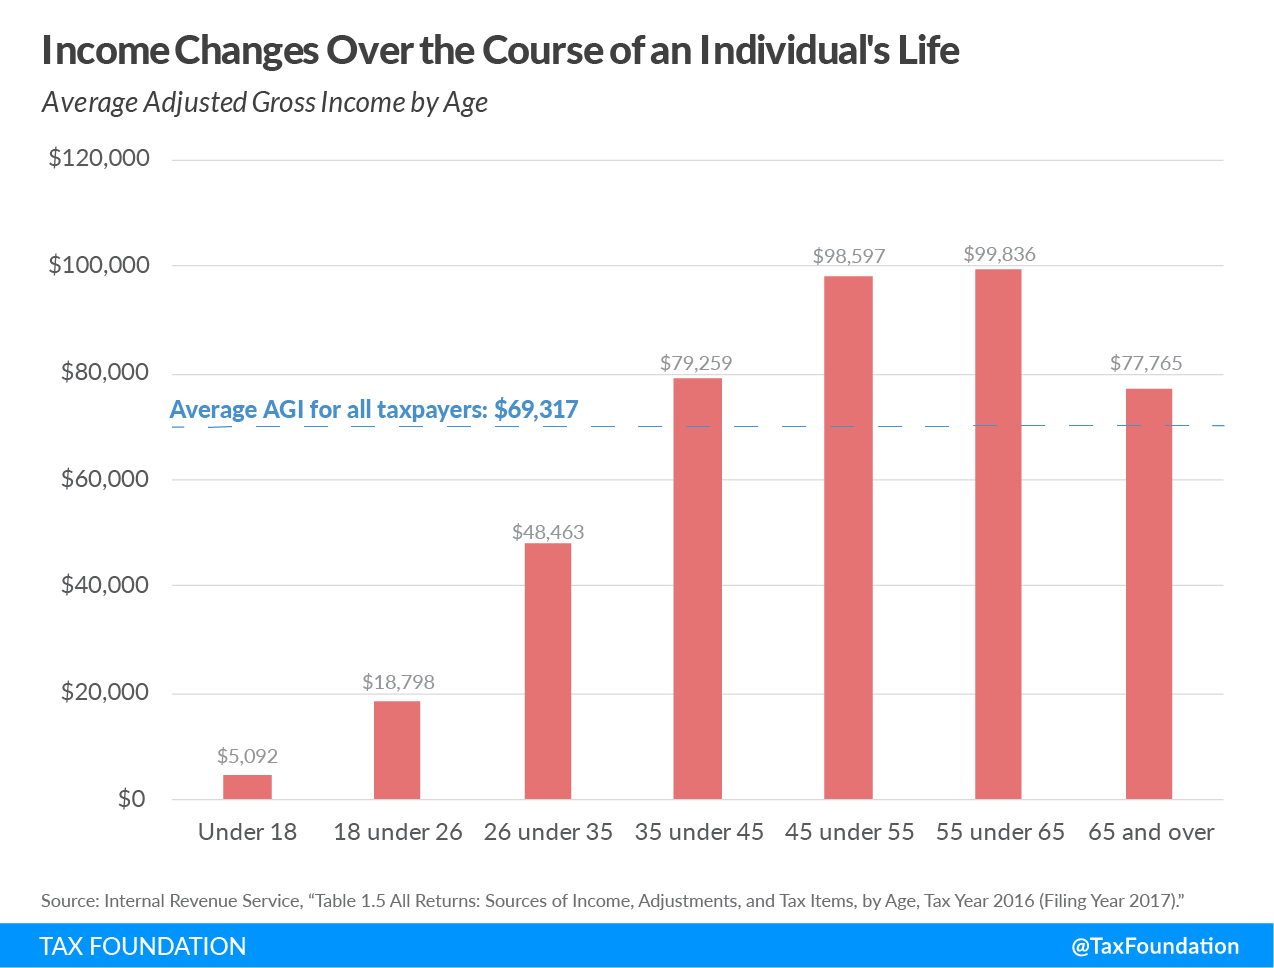 Income changes over the course of an individual's life, average incomes rise with age, average income age